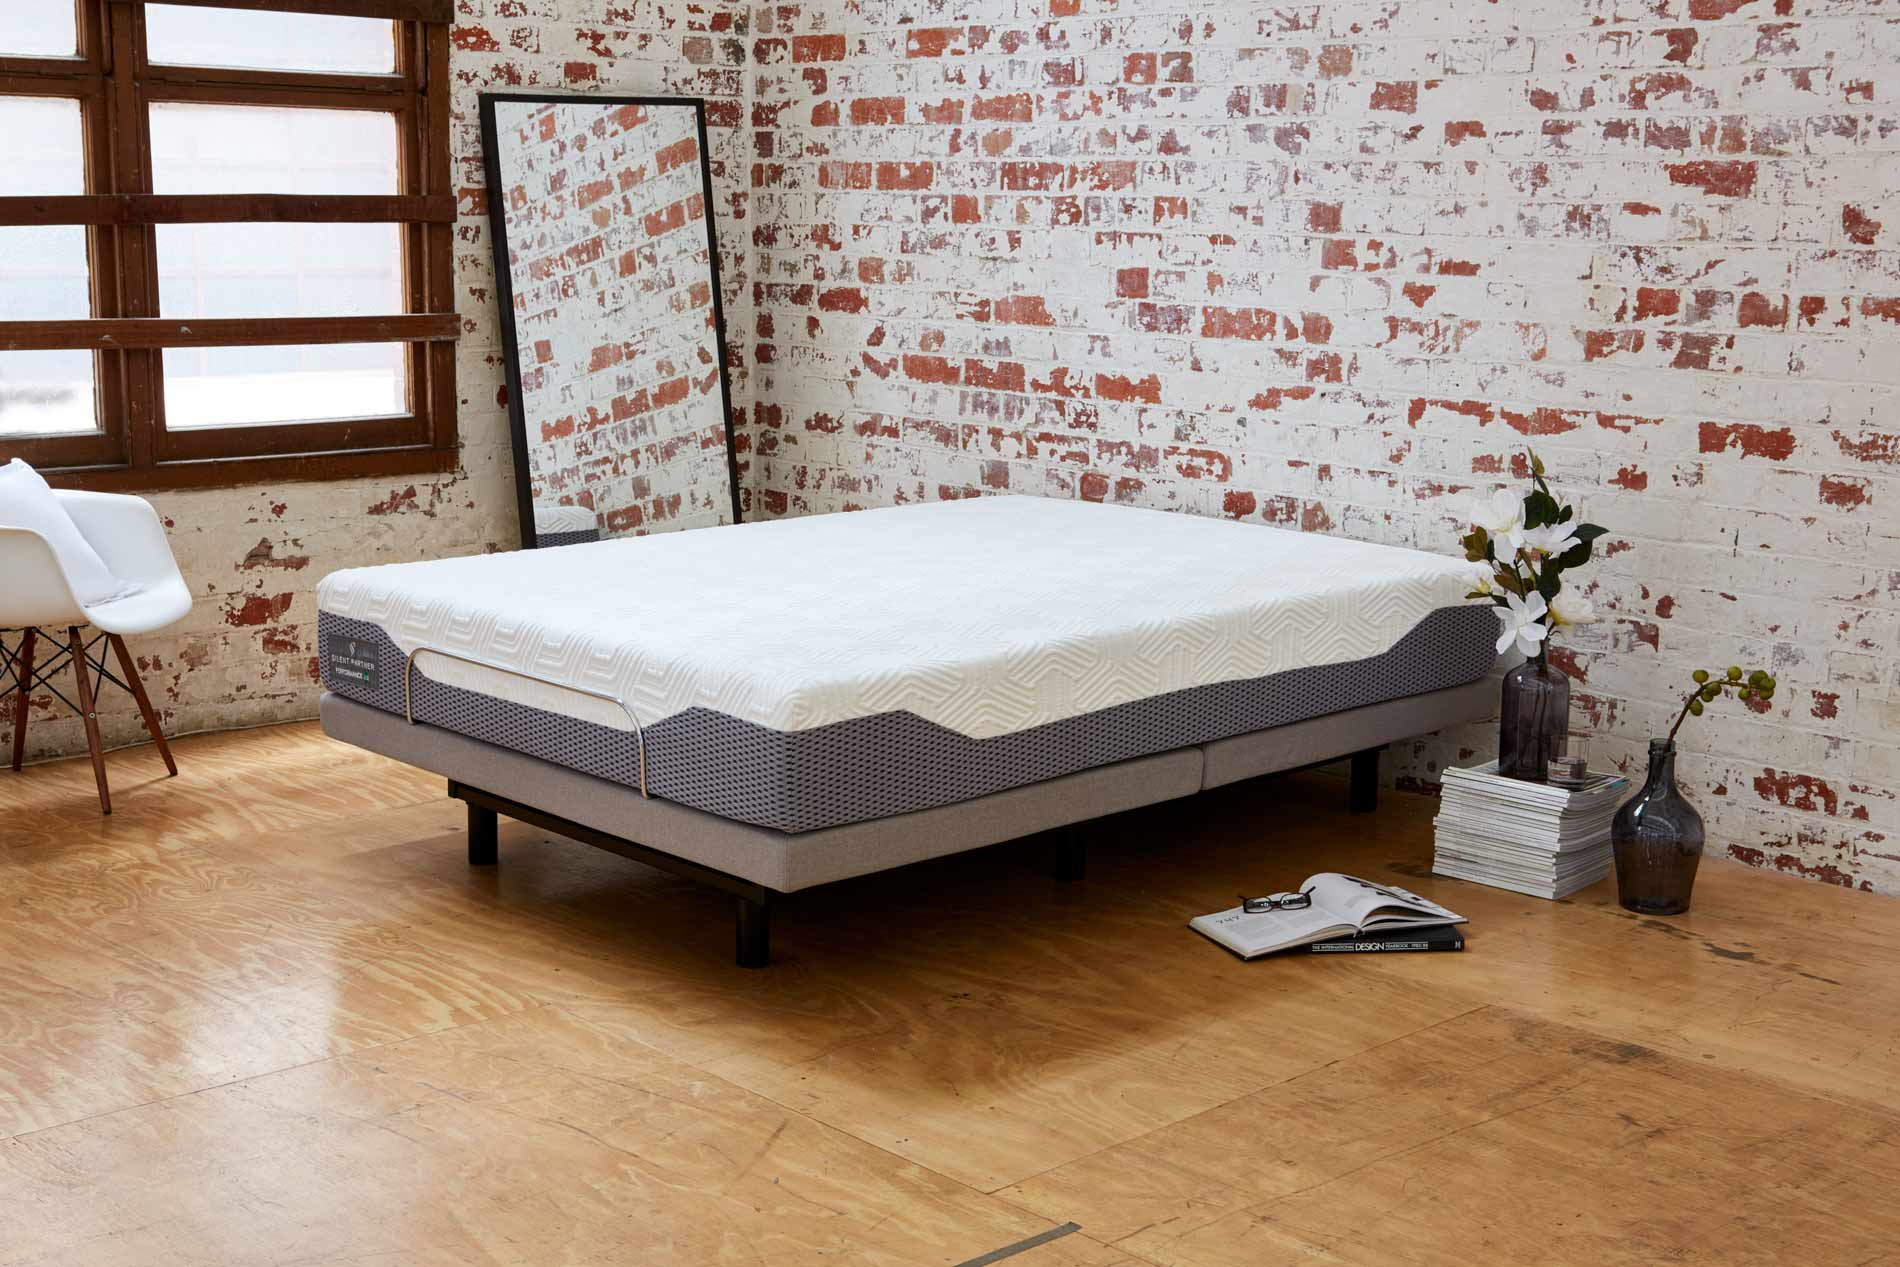 SP PERFORMANCE M10 QB MATTRESS image 1